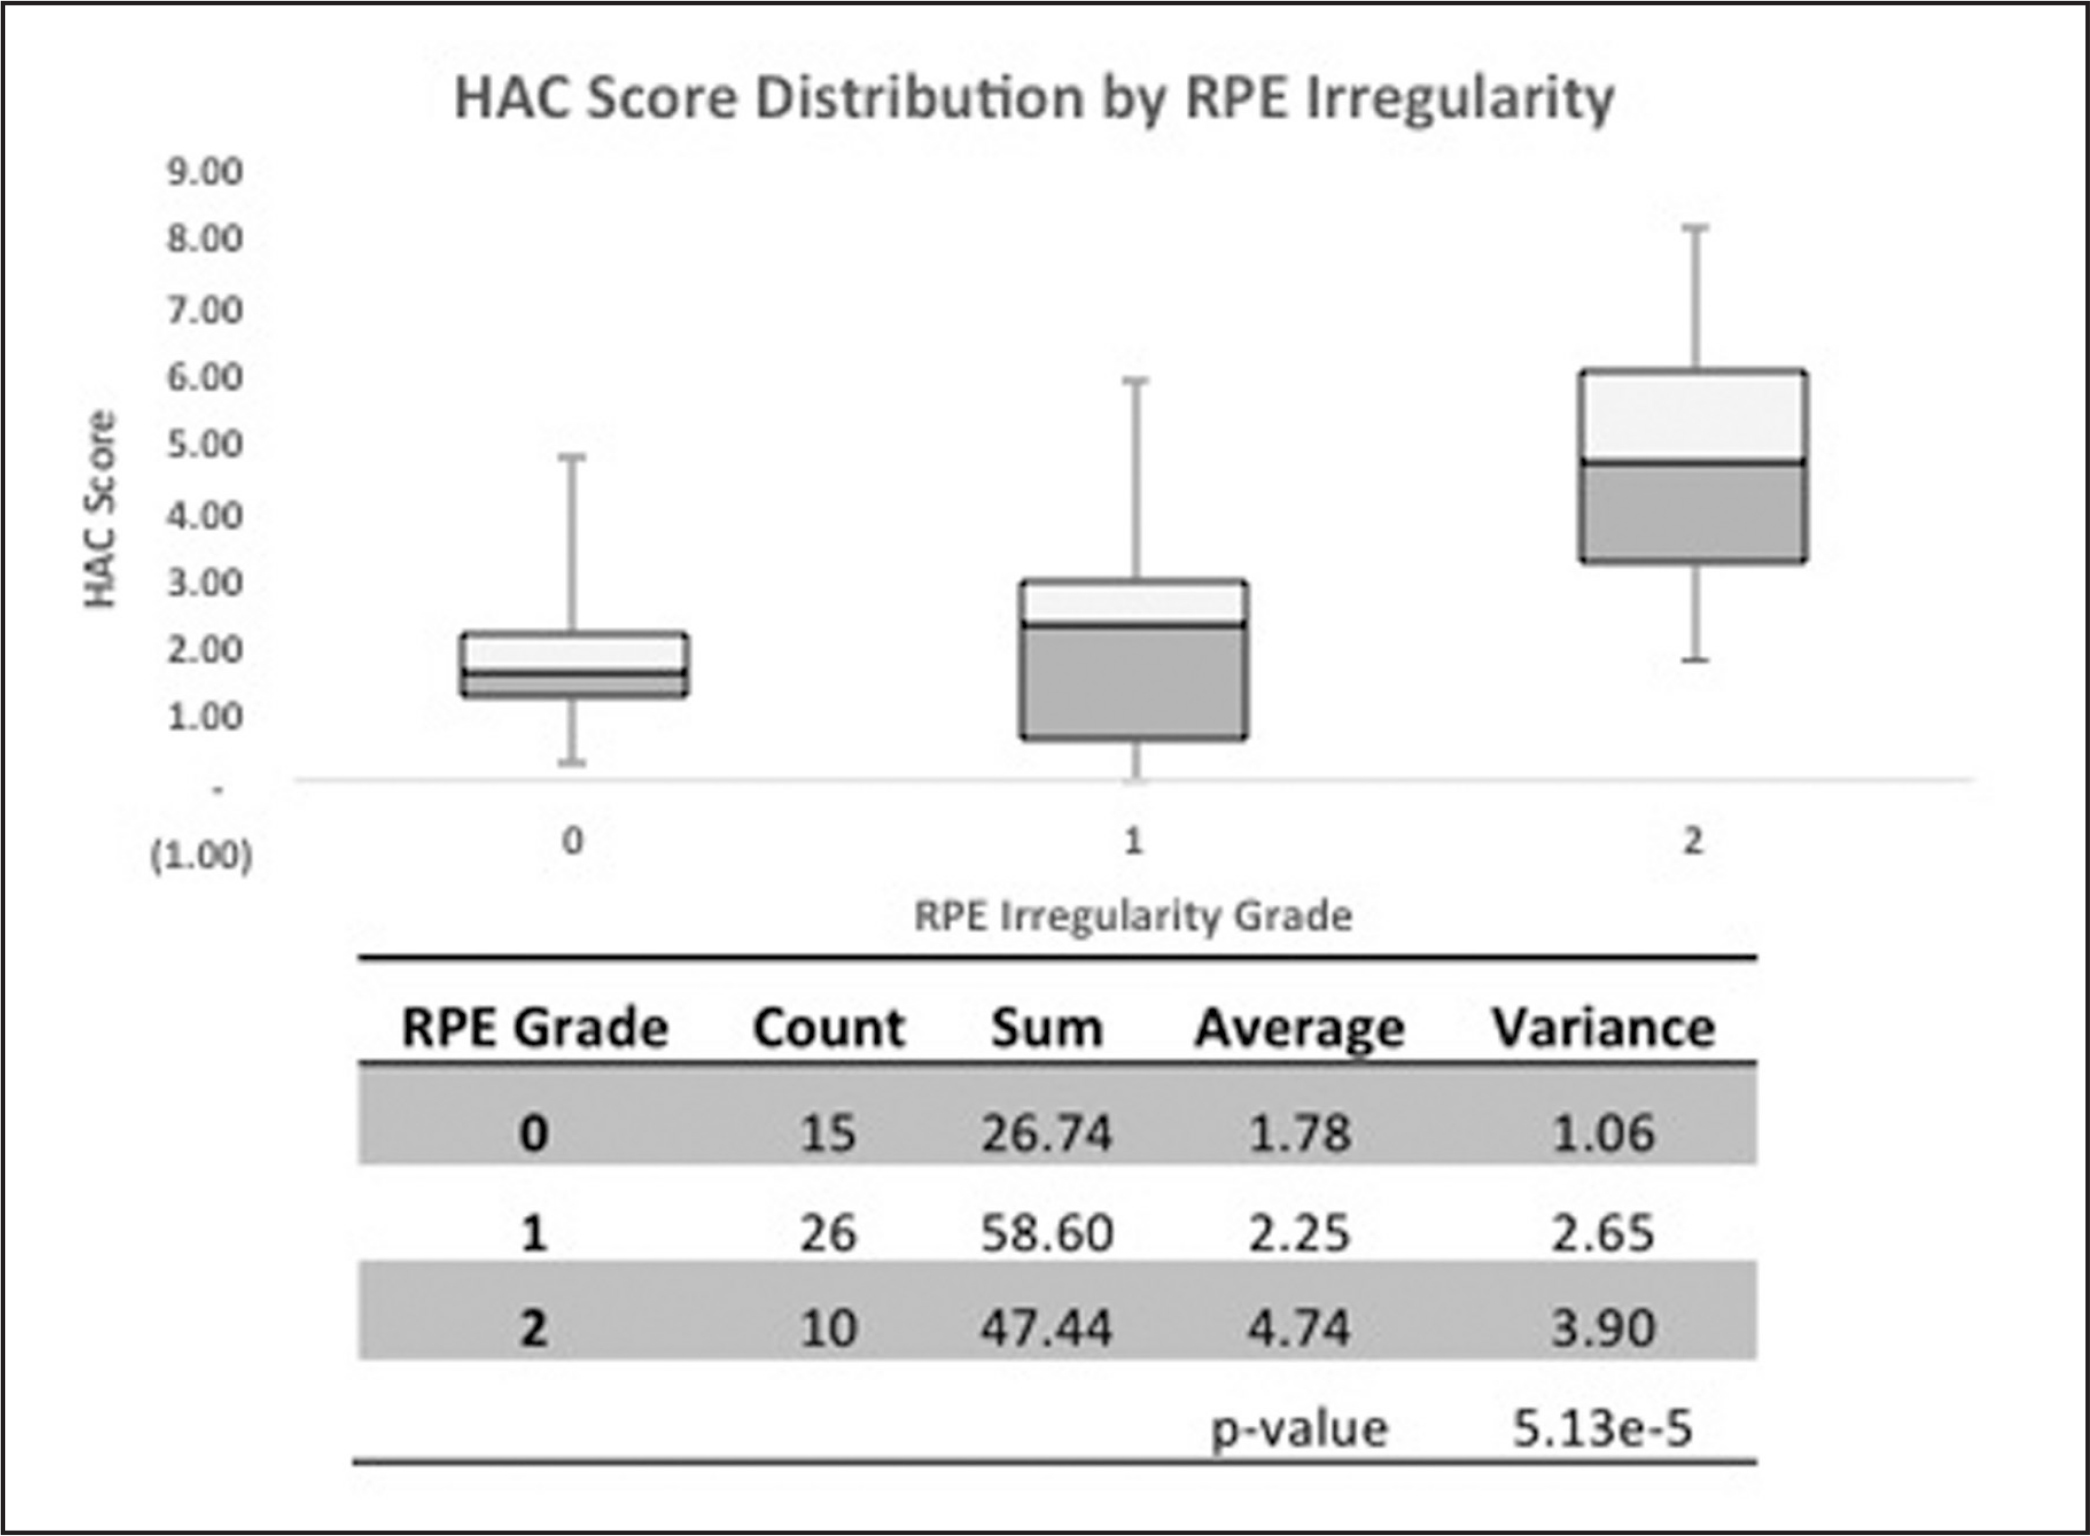 Distribution of Hyperacuity App score in three grades of retinal pigment epithelium irregularity shown above with results of oneway analysis of variance below.